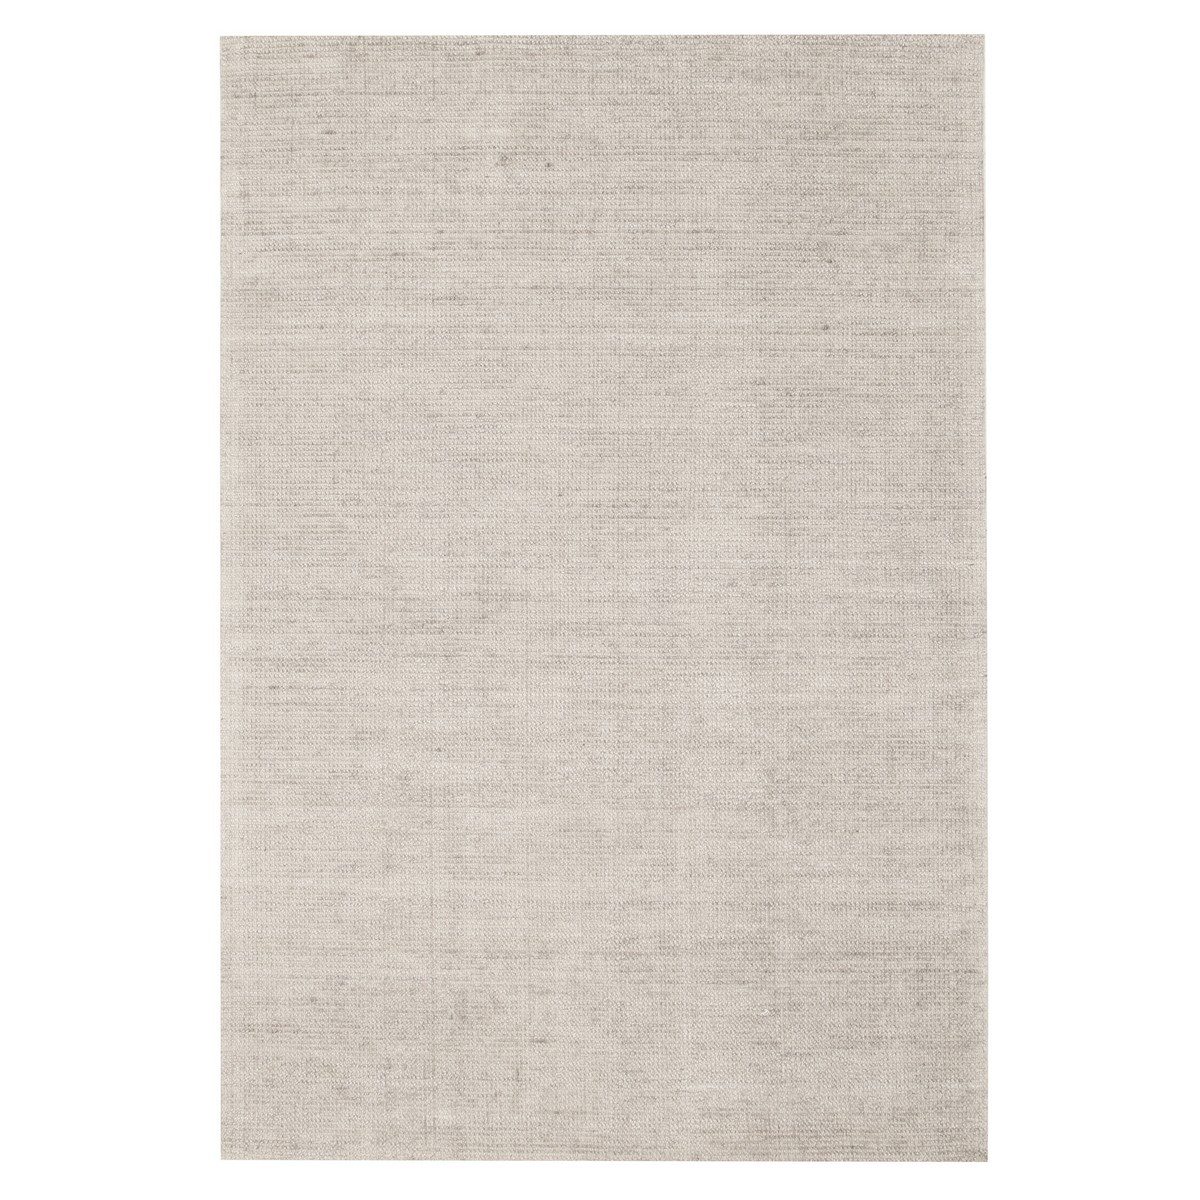 Allure Cloud Hand Loomed Modern Rug, 320x230cm, Stone